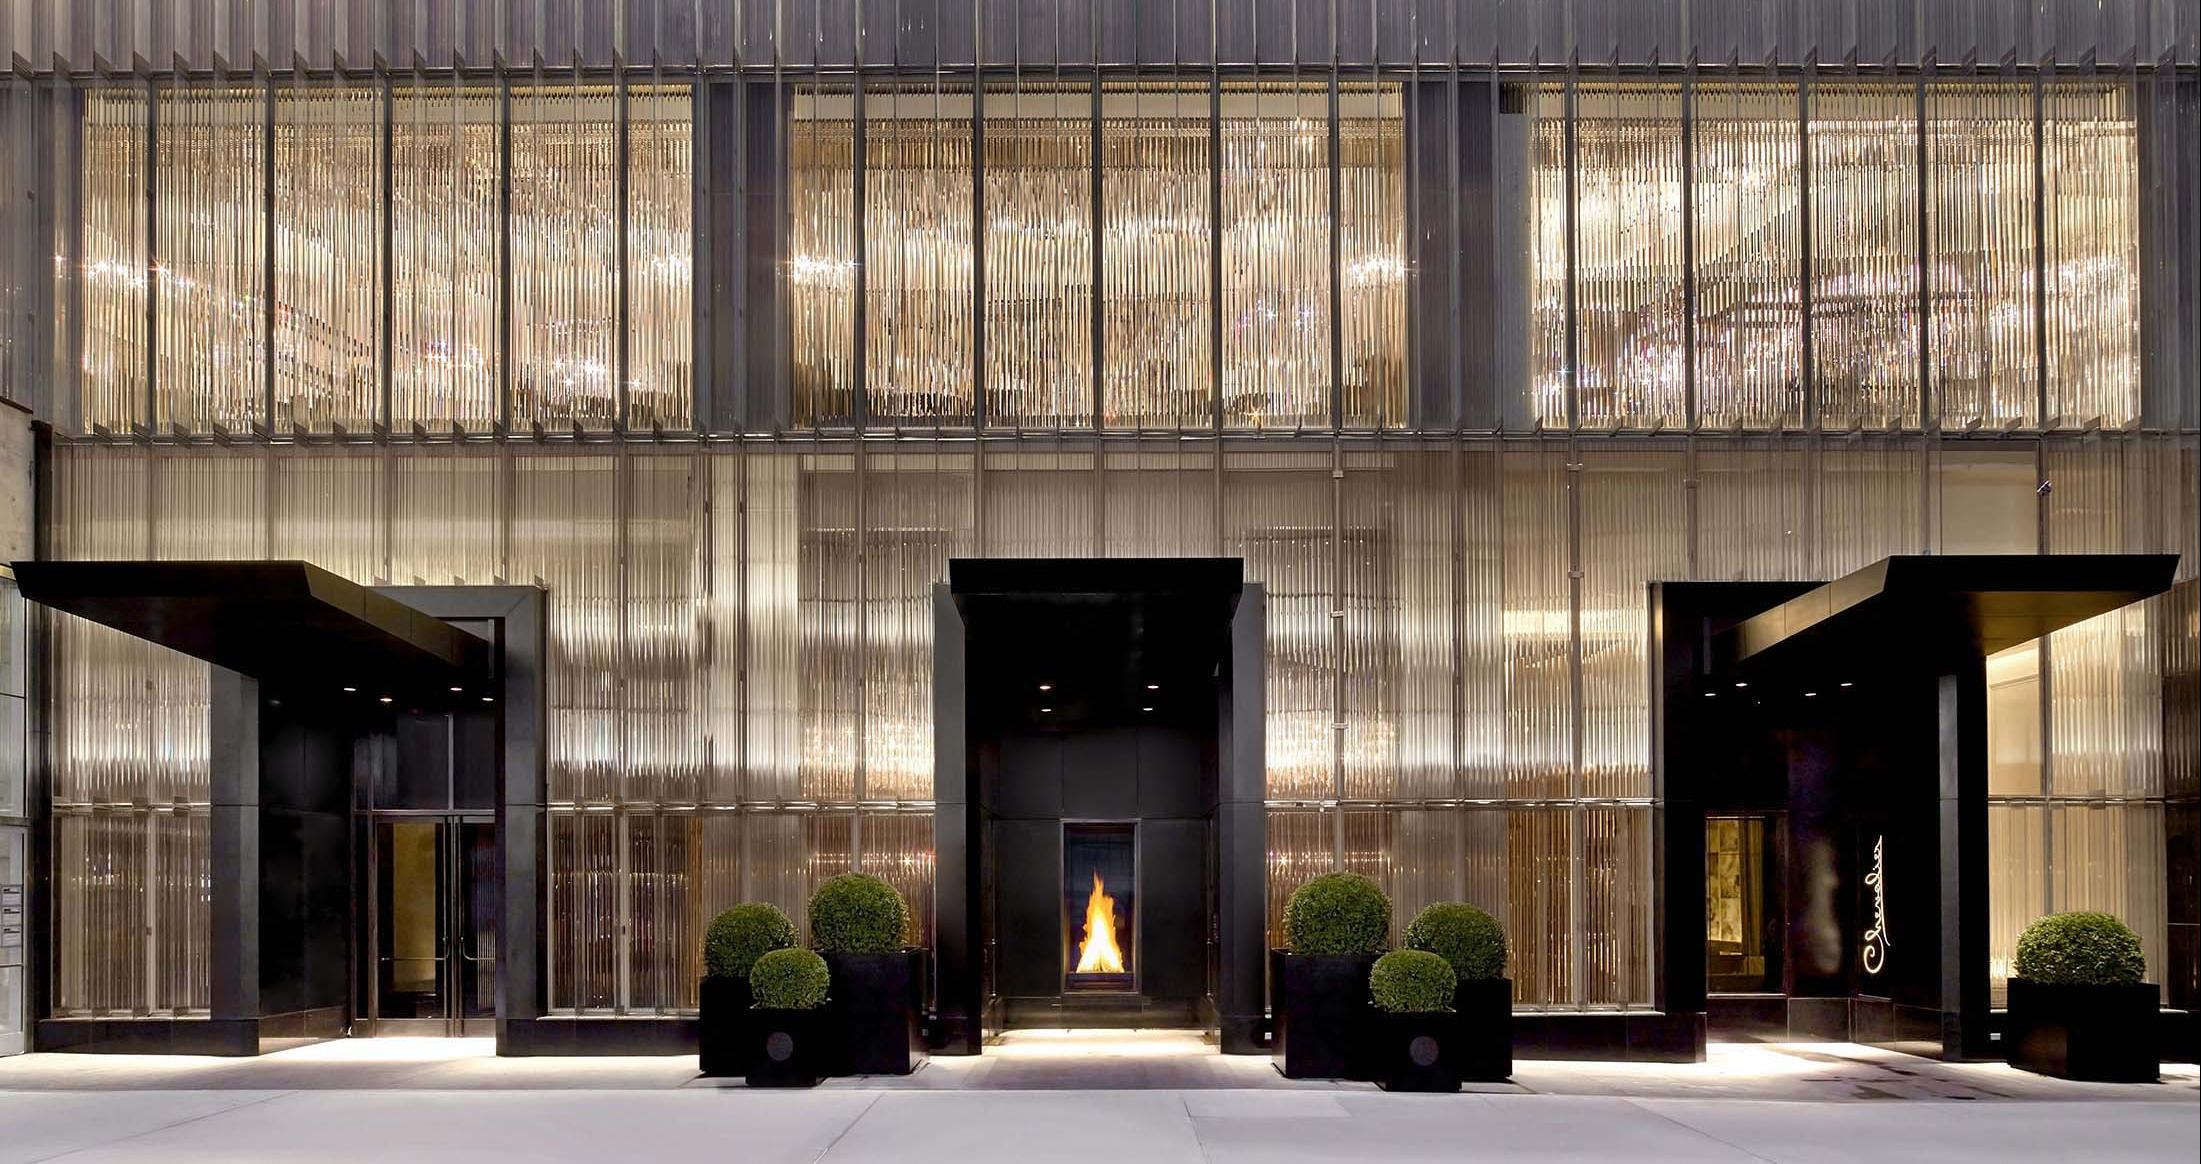 Baccarat Hotel New York exterior